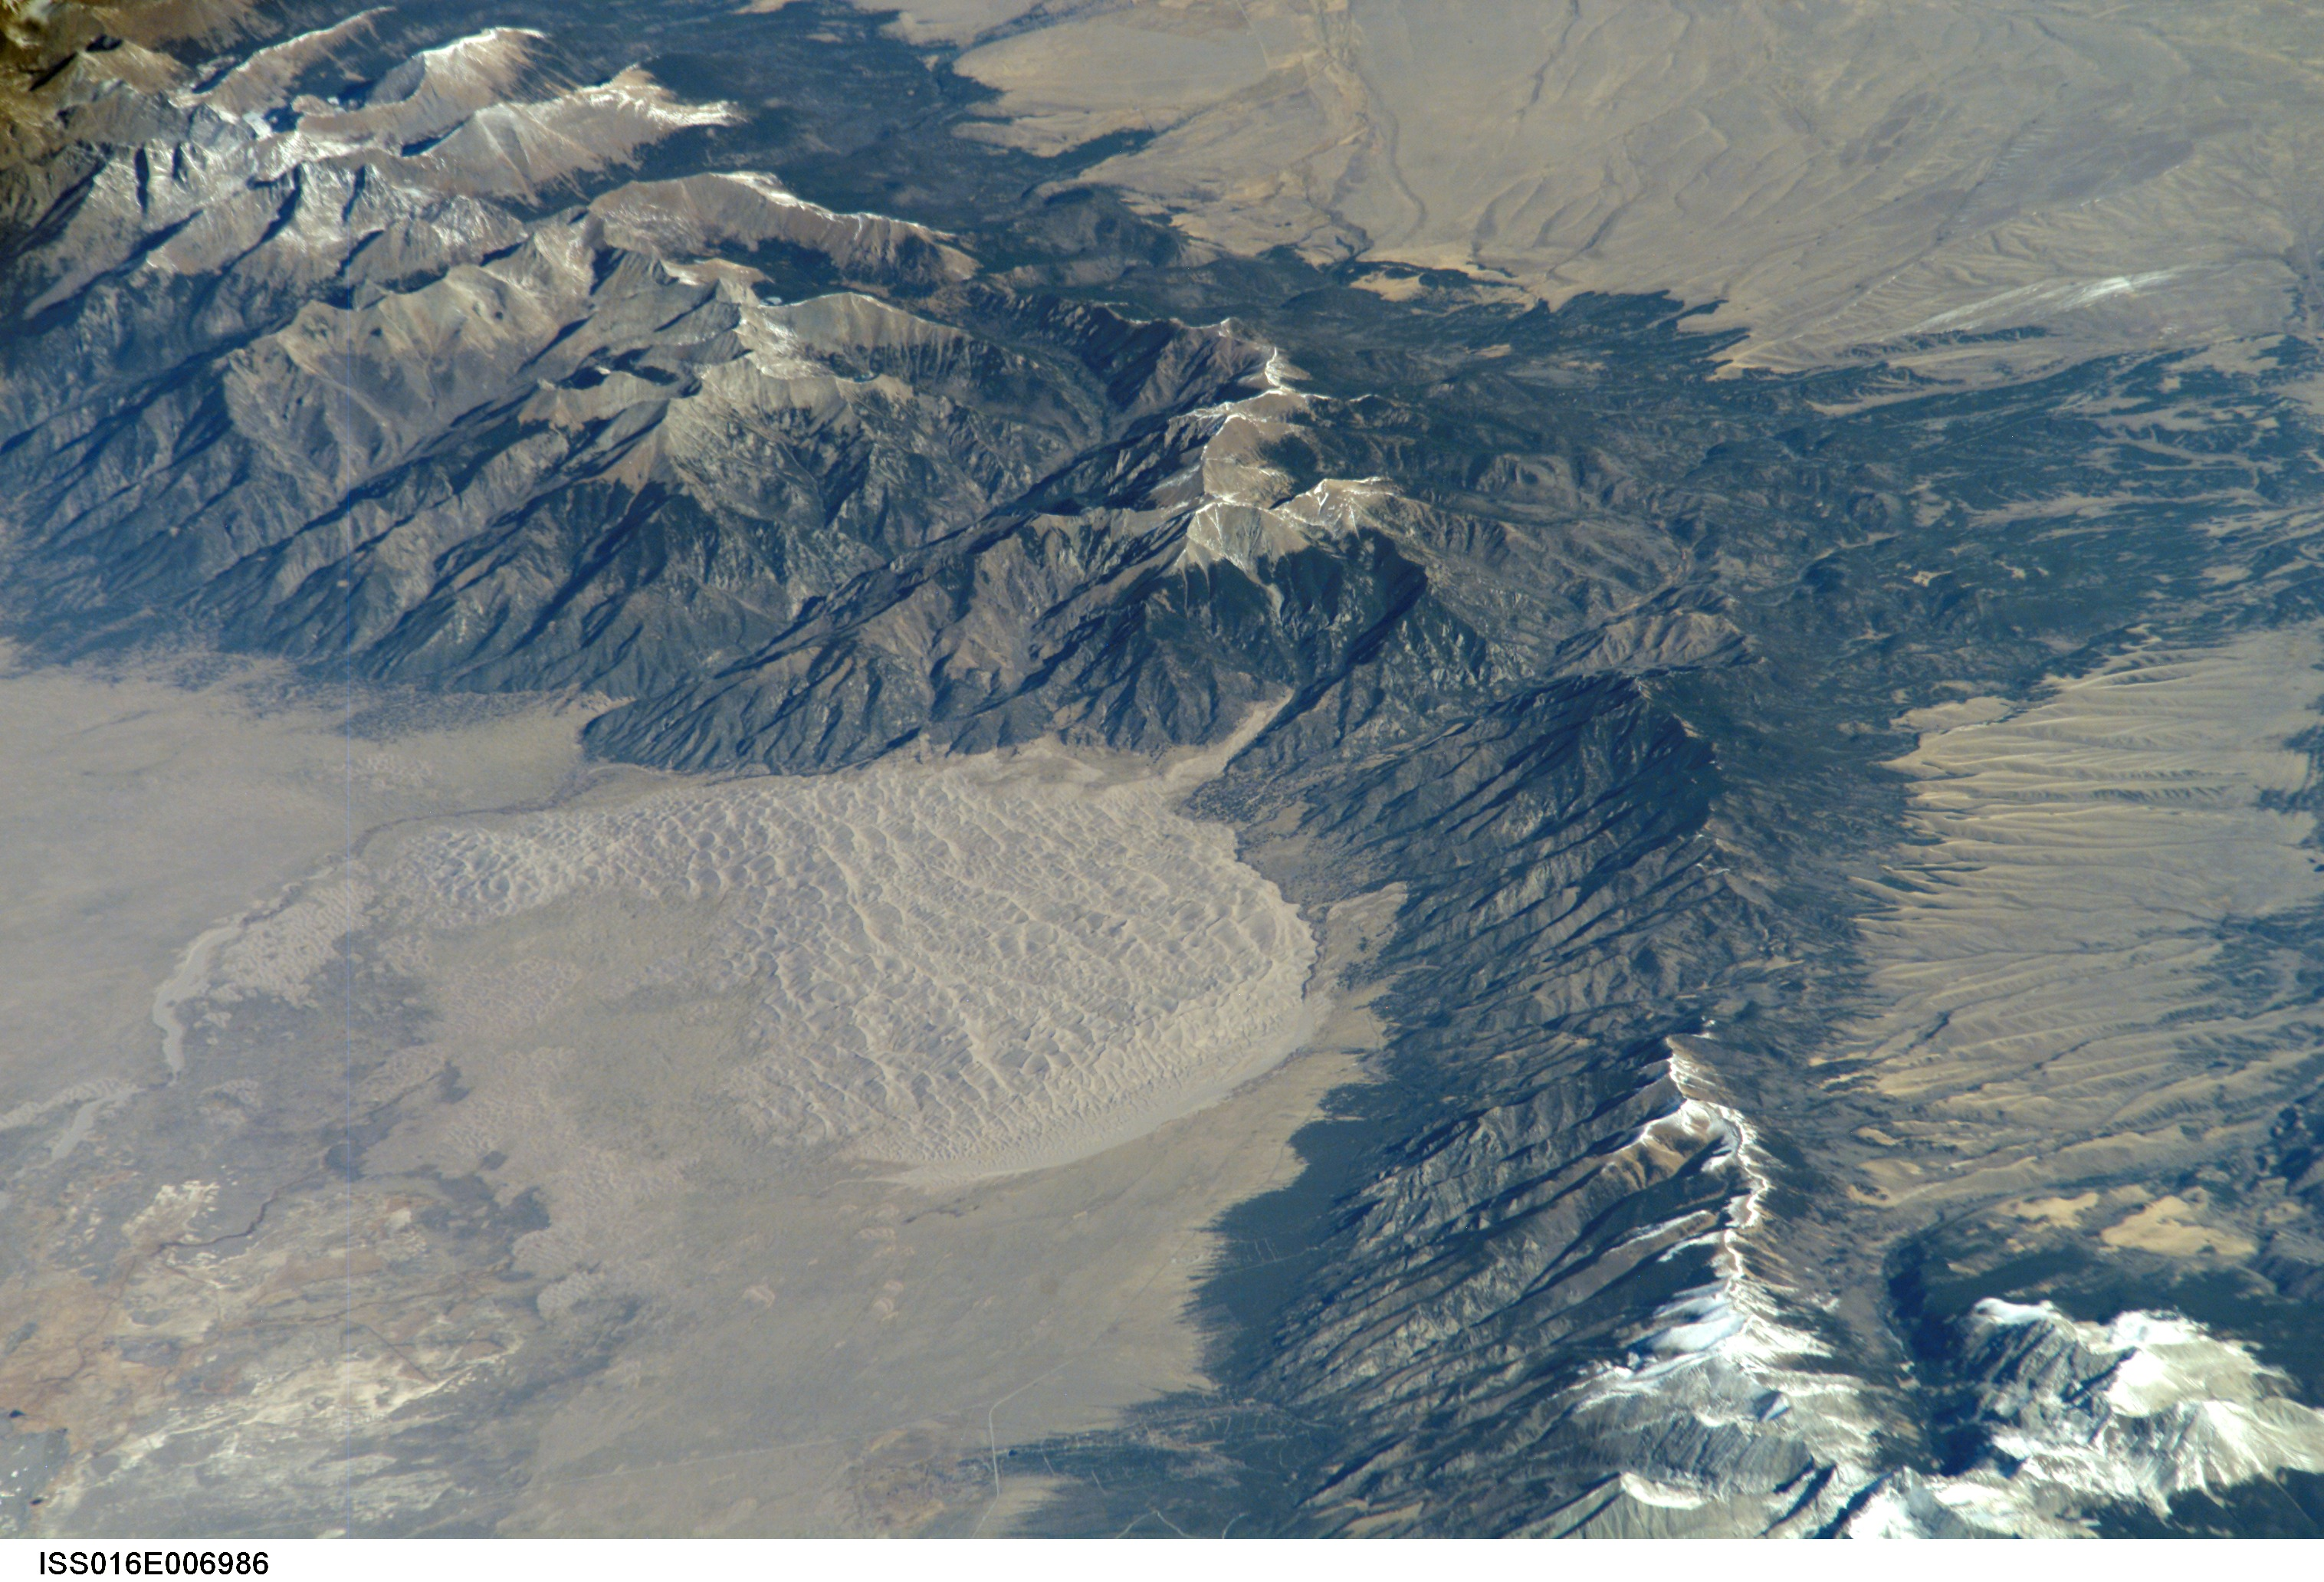 Great Sand Dunes National Park photographed from the ISS in 2007.